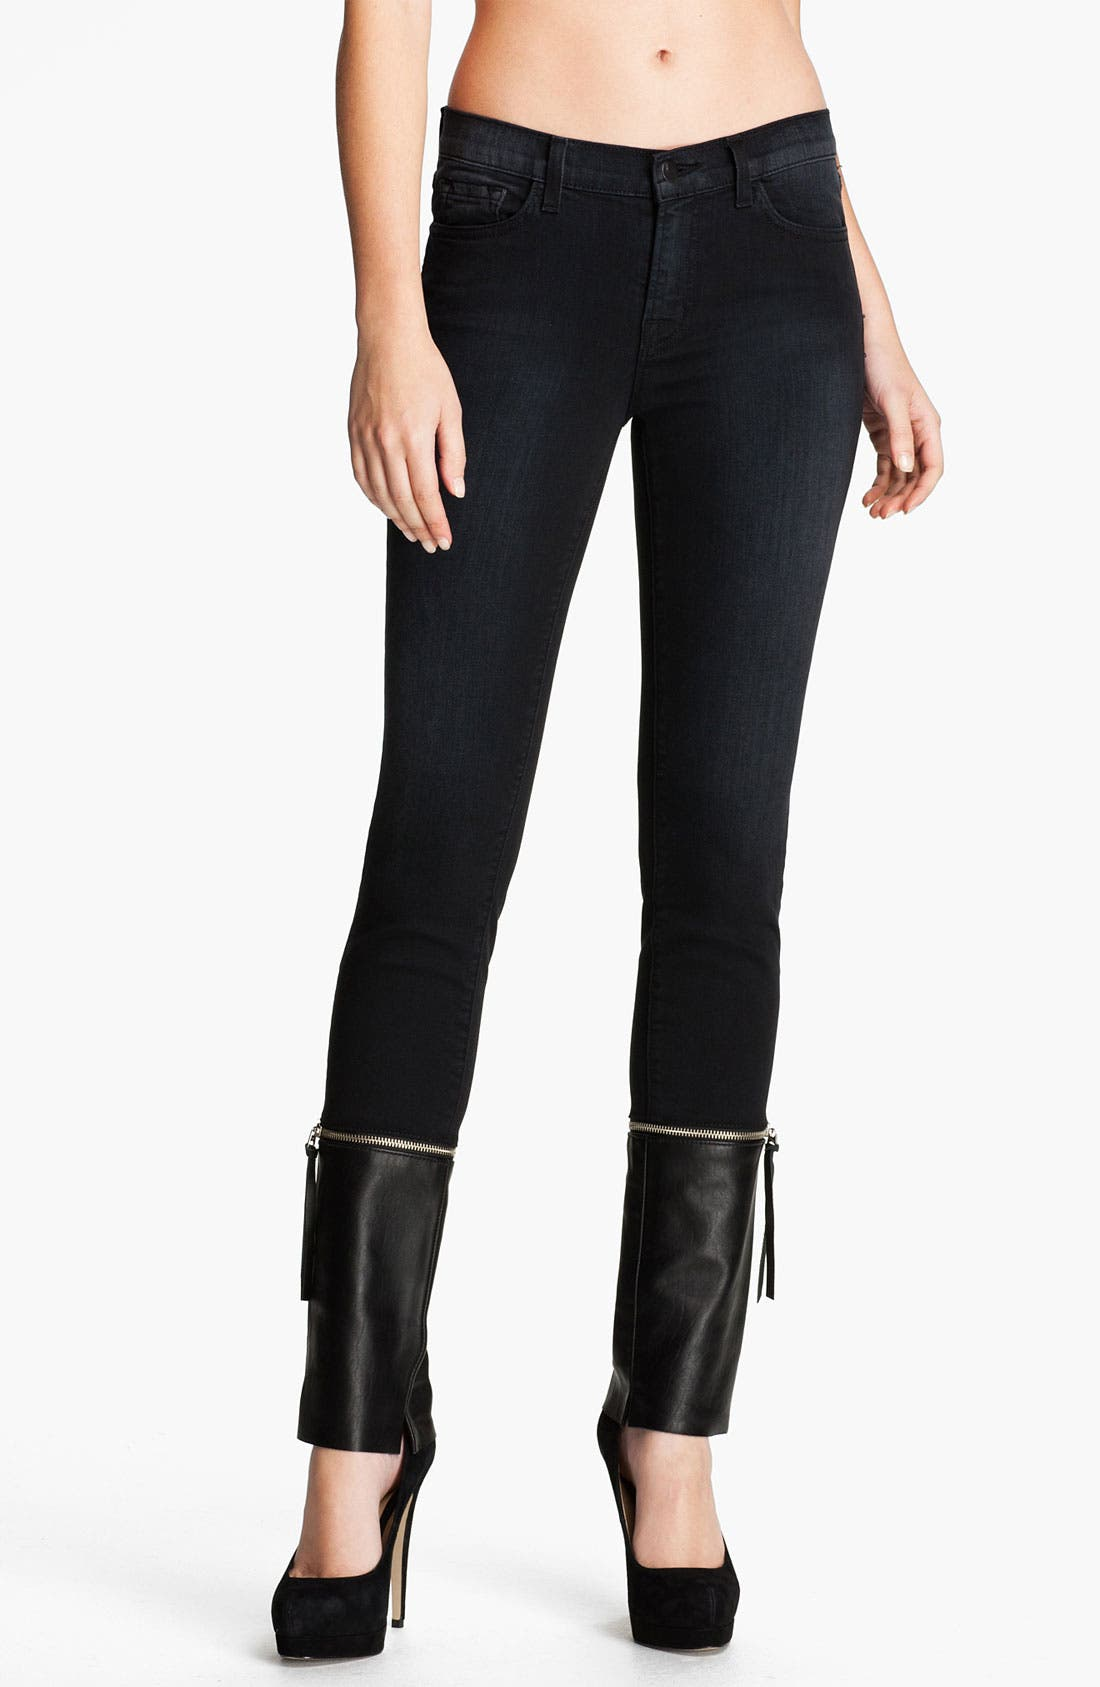 Alternate Image 1 Selected - J Brand Denim & Leather Skinny Pants